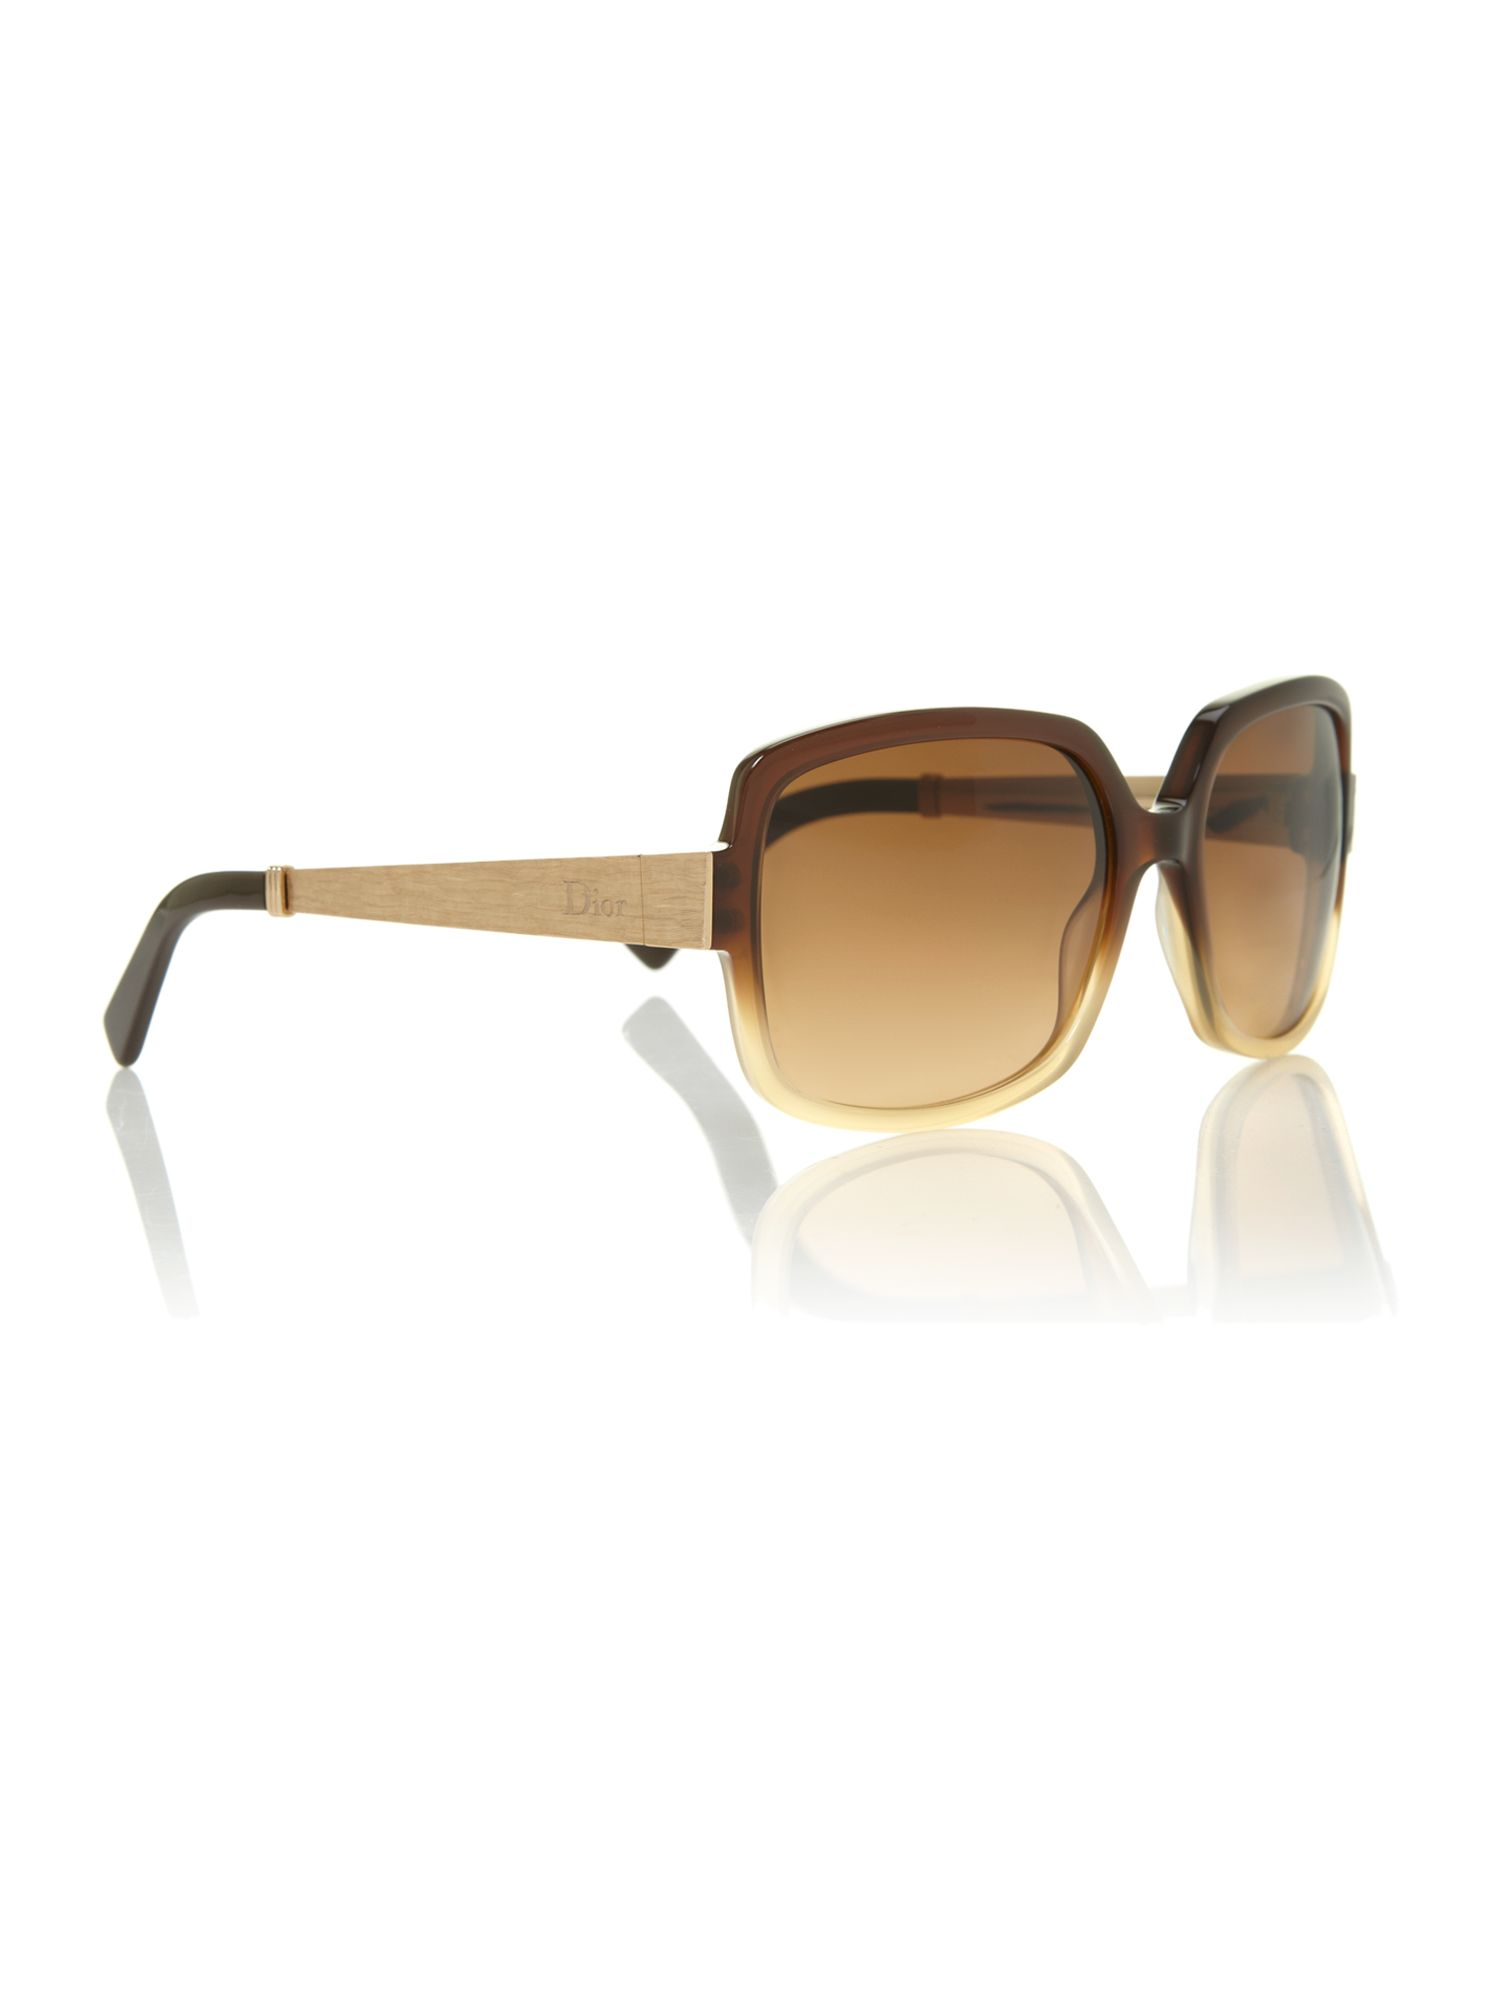 Ladies DIORSOIE2 brown square sunglasses